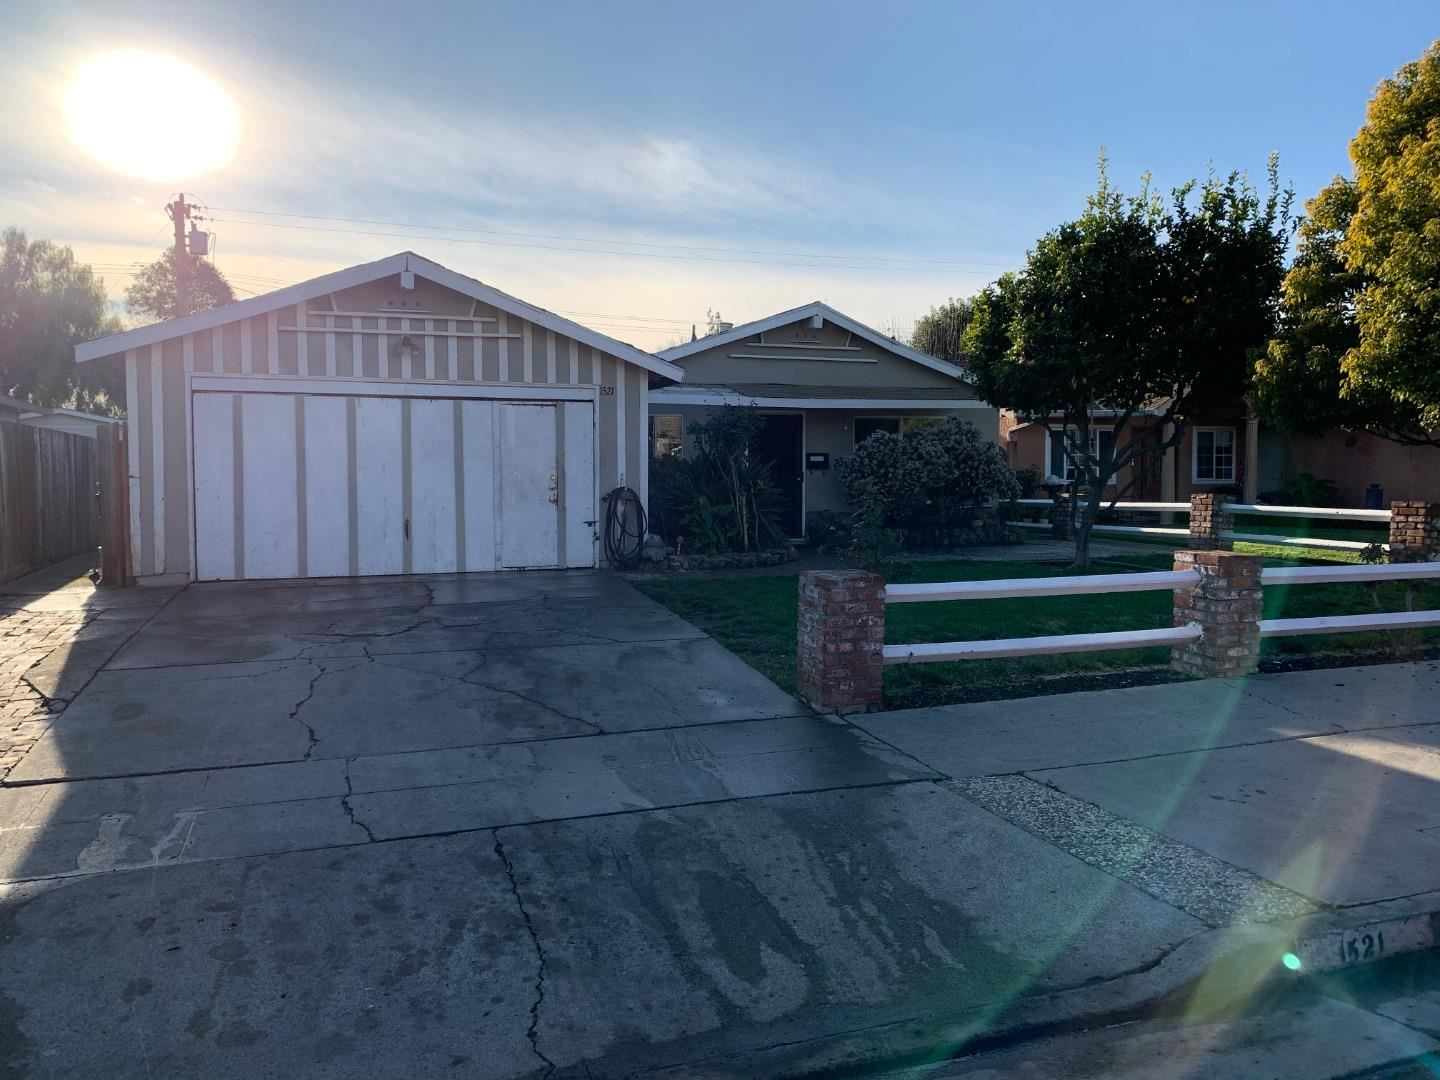 Photo for 1521 Mount Diablo DR, SAN JOSE, CA 95127 (MLS # ML81779200)